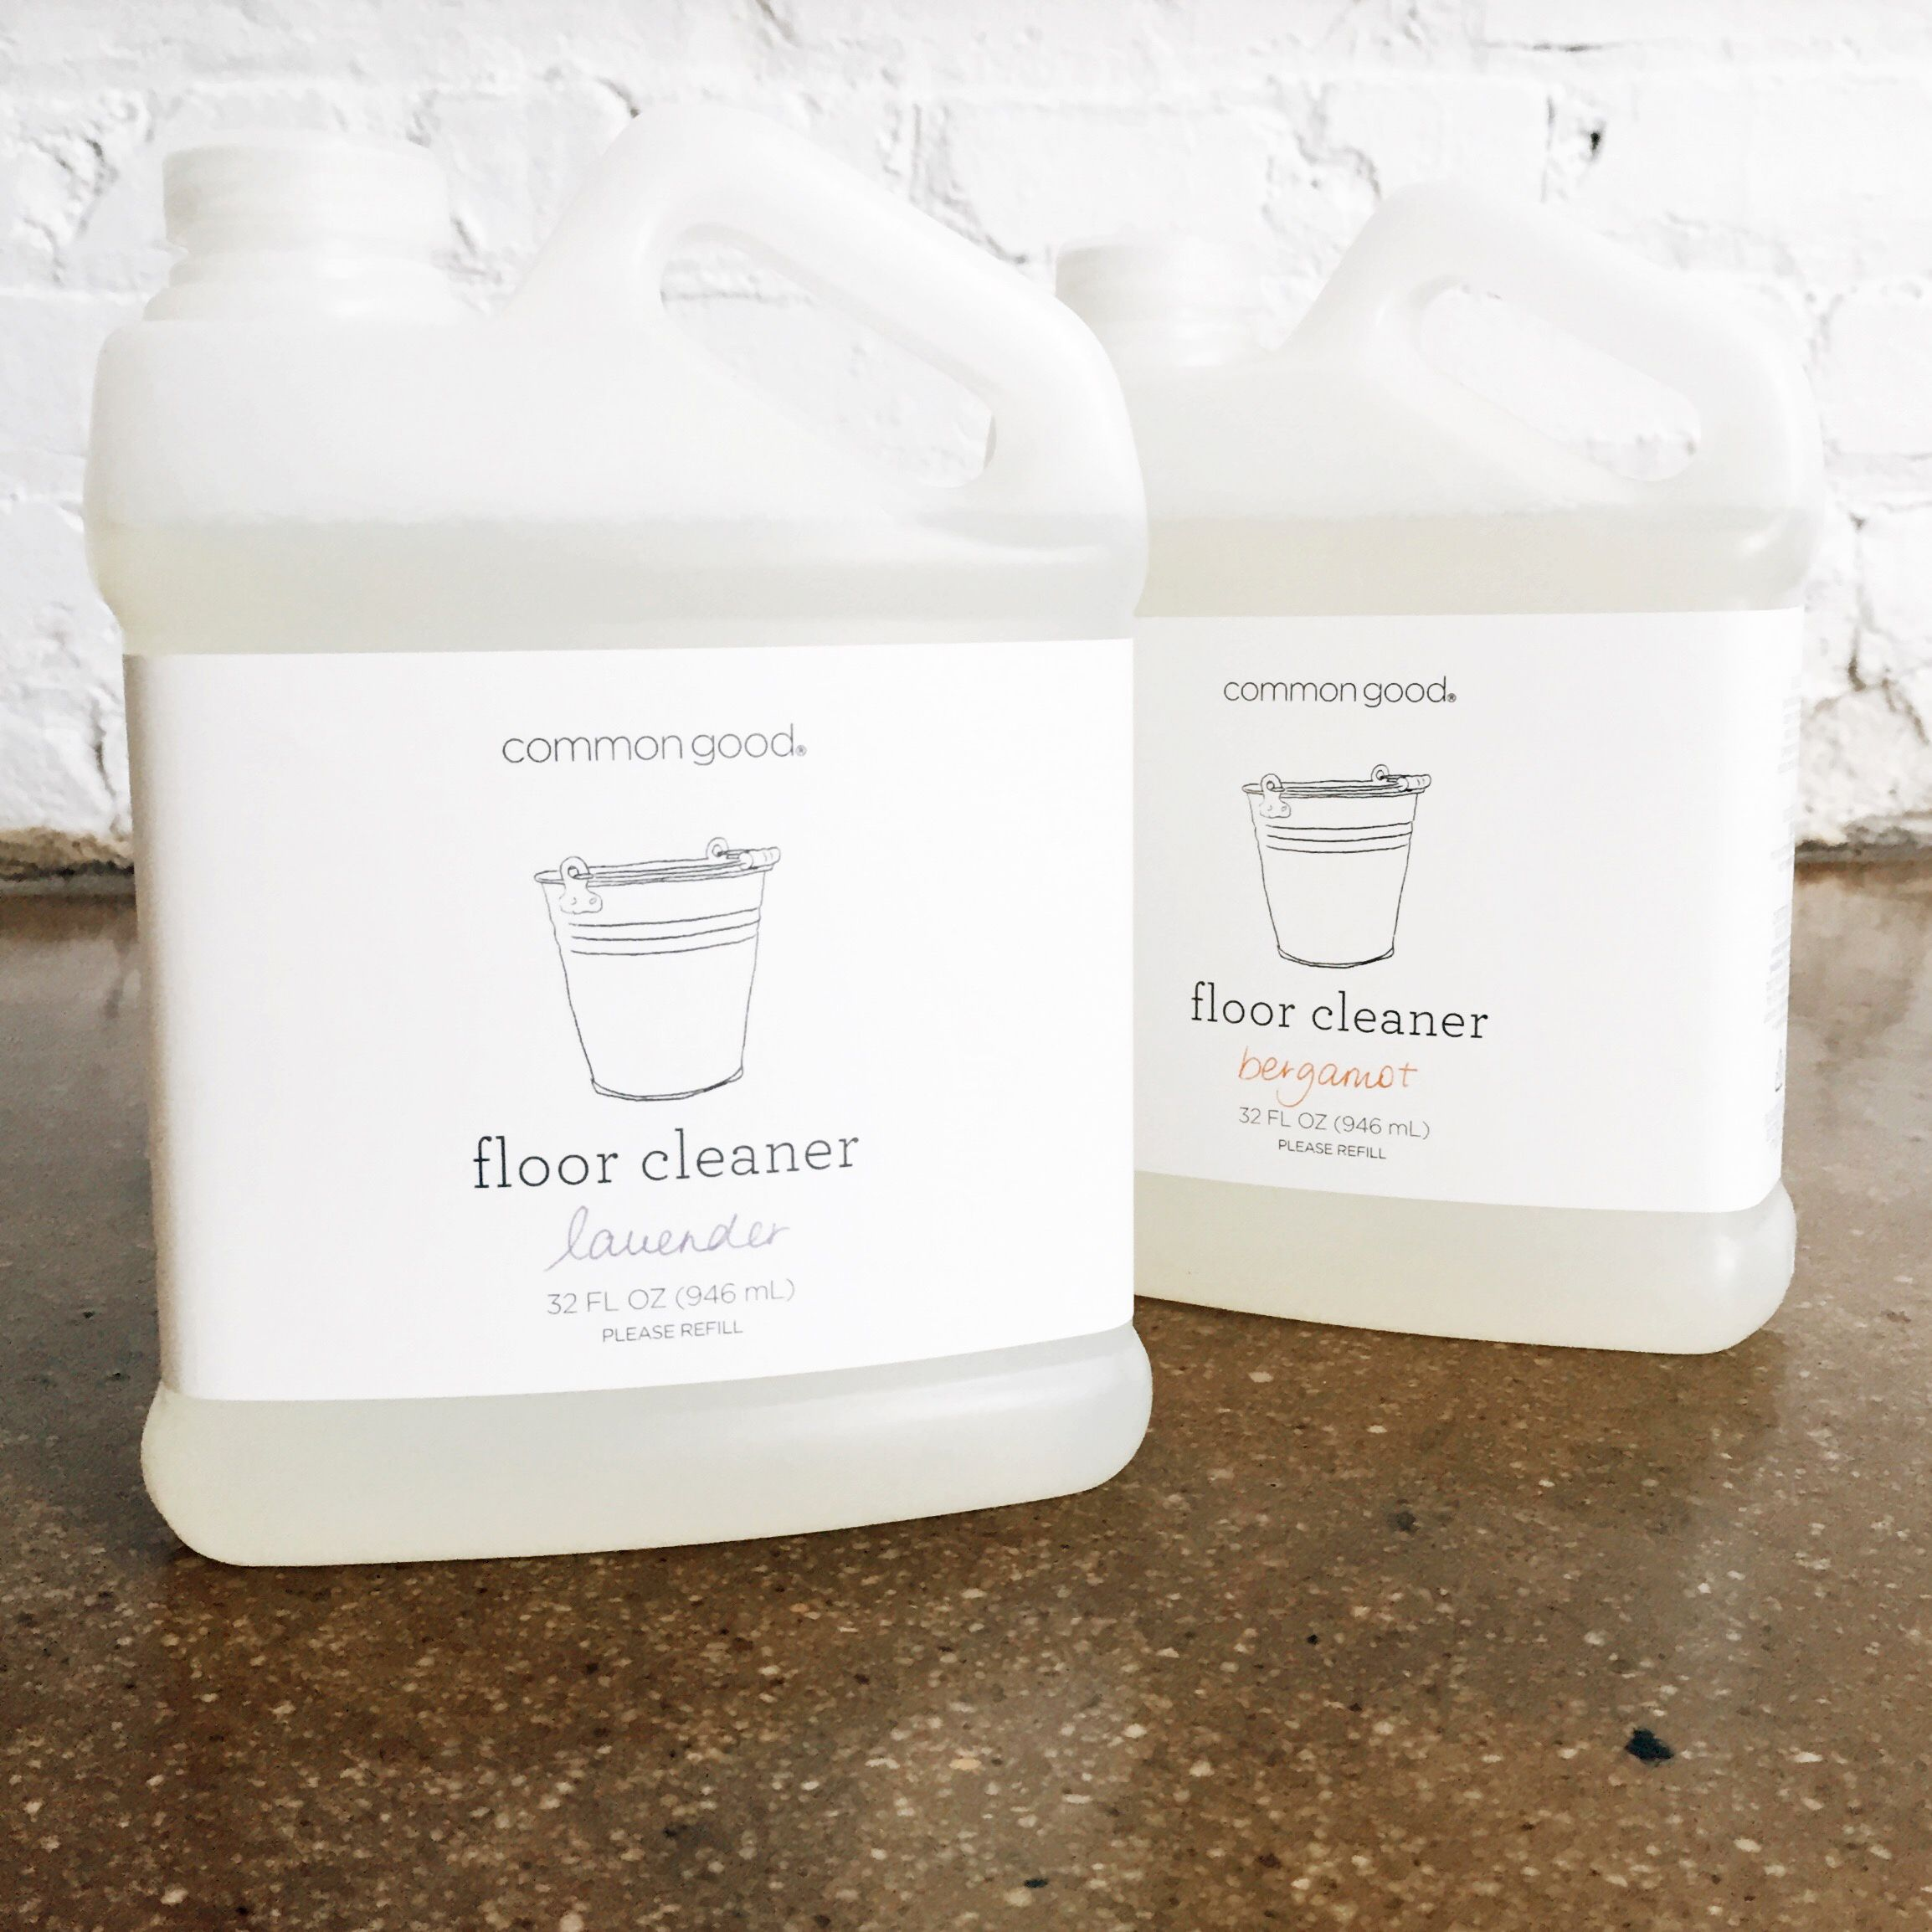 Eco floor cleaner concentrated formula to use on any